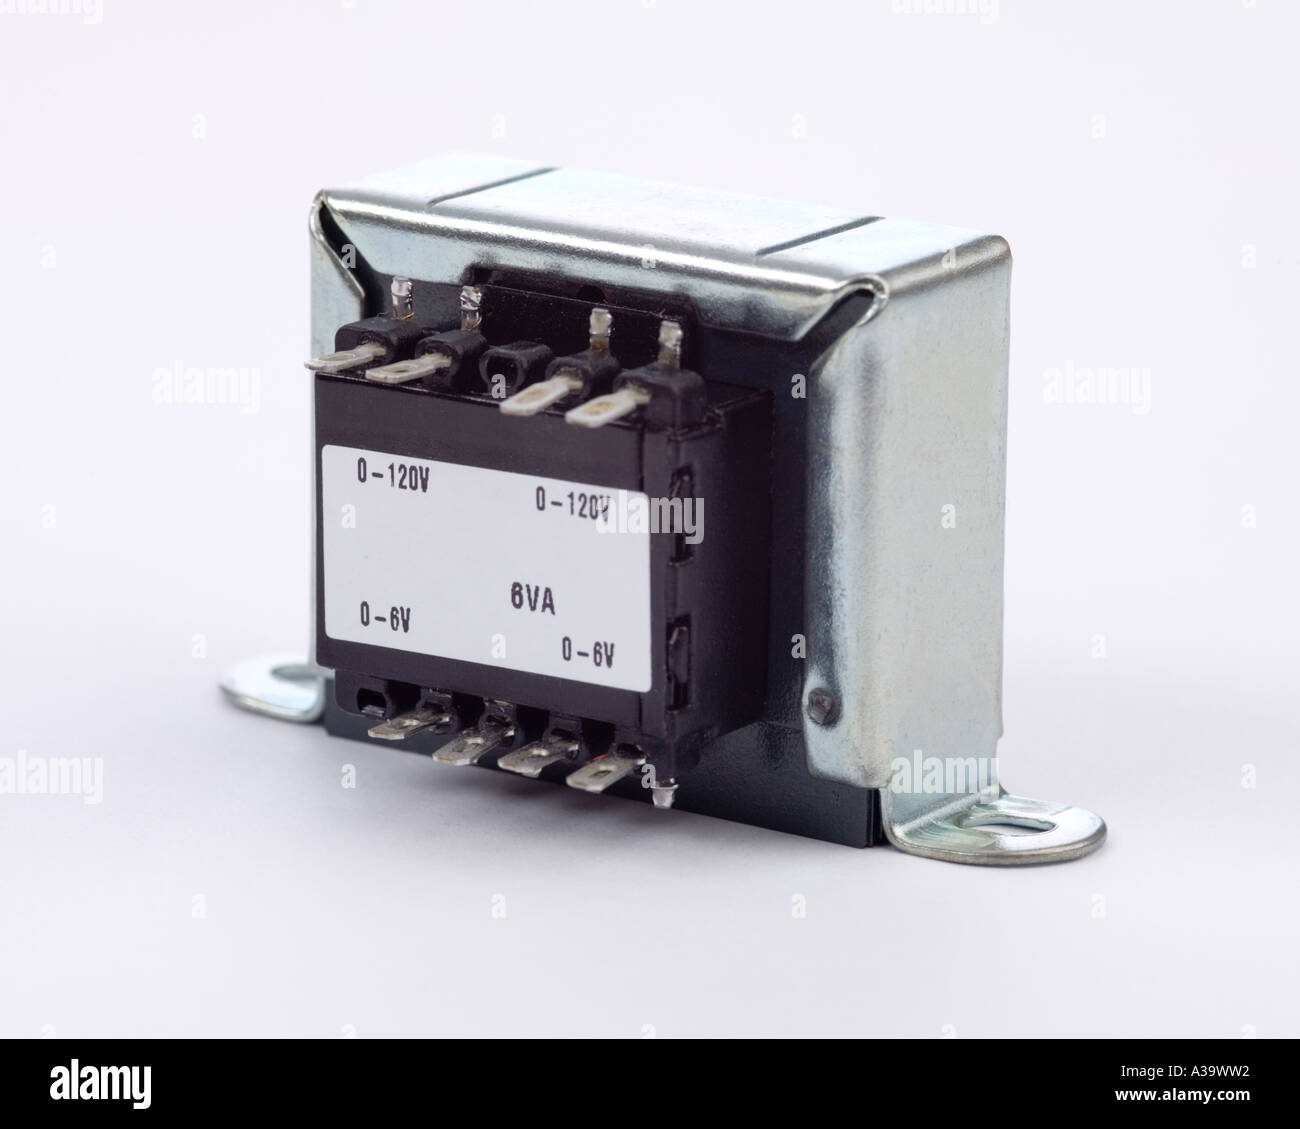 Ac Transformer Stock Photos & Ac Transformer Stock Images - Alamy